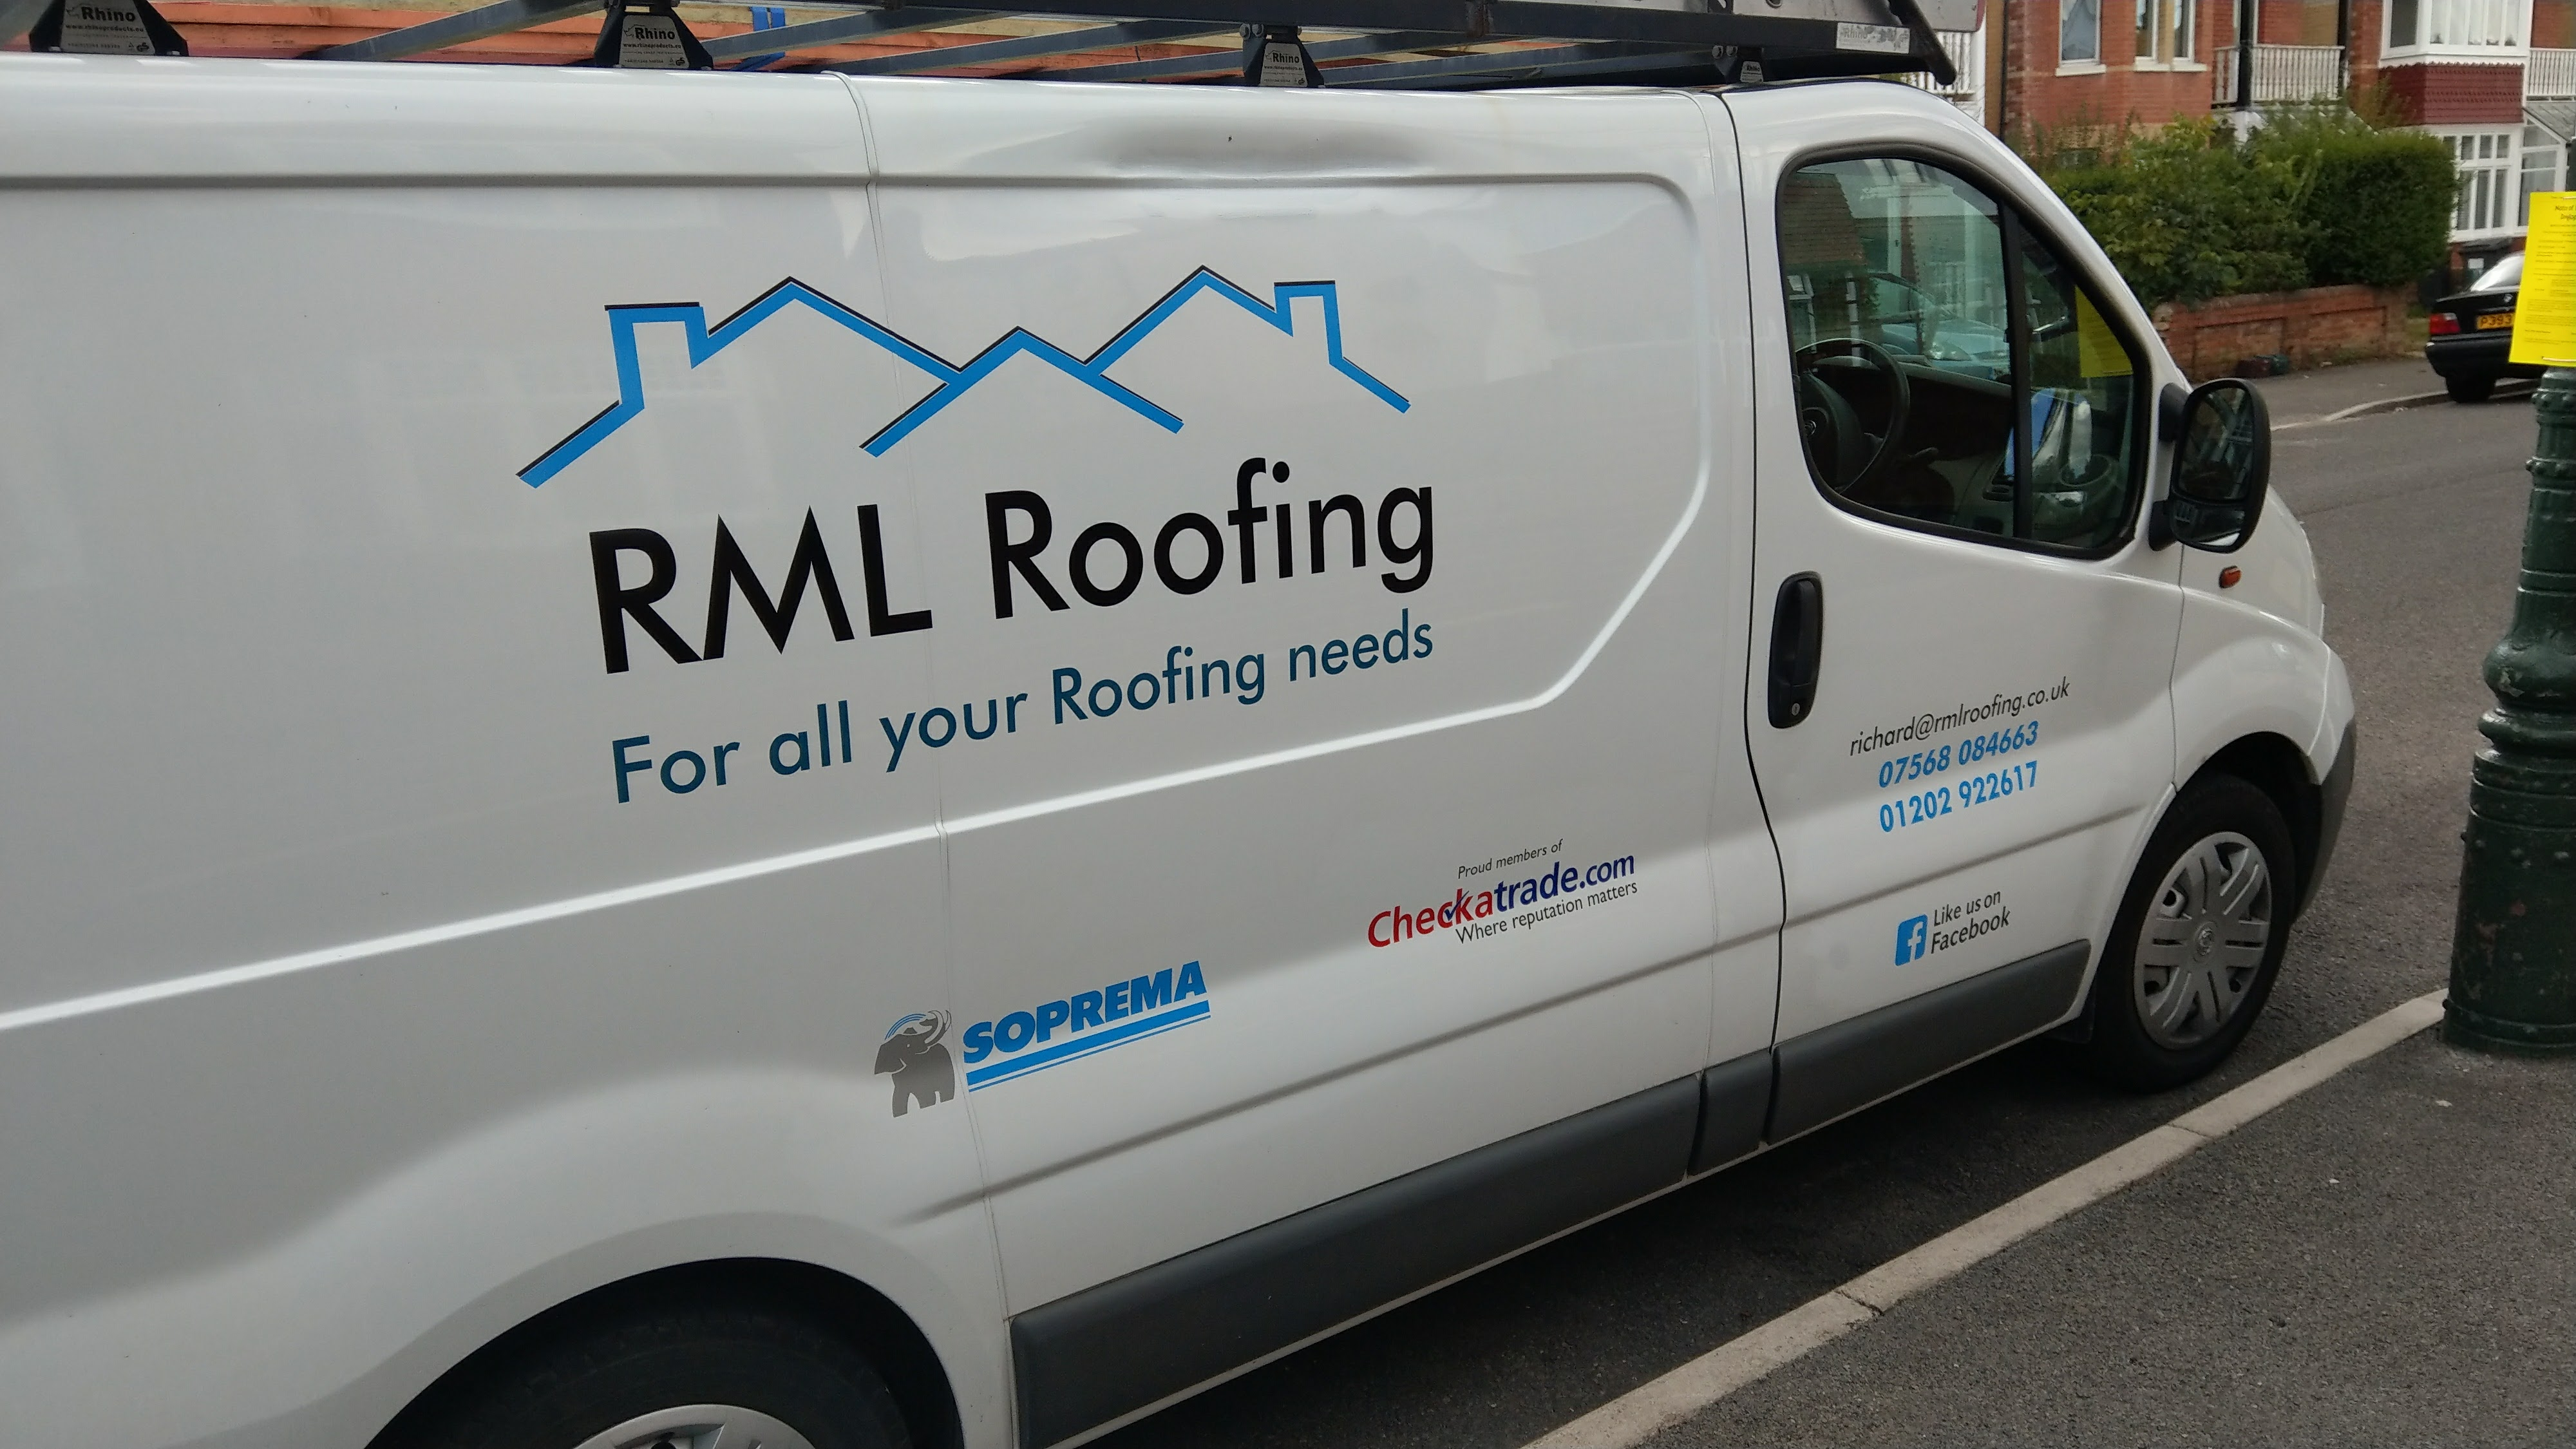 RML Roofing signage